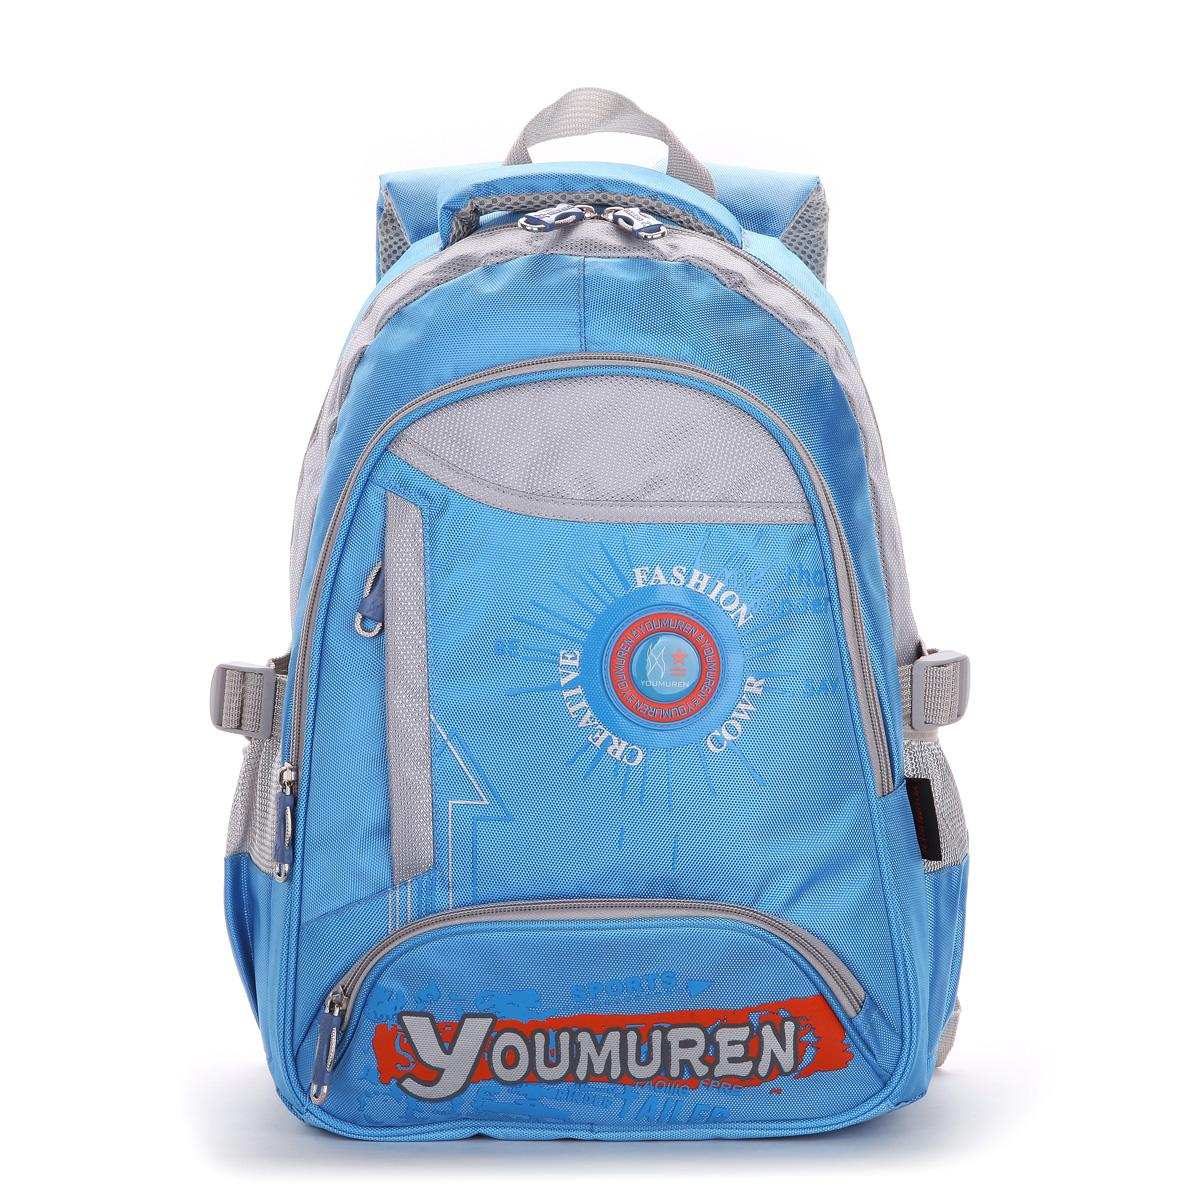 Primary school students school bag 1 - 3 male female child school bag wear-resistant 6082 double-shoulder relief(China (Mainland))